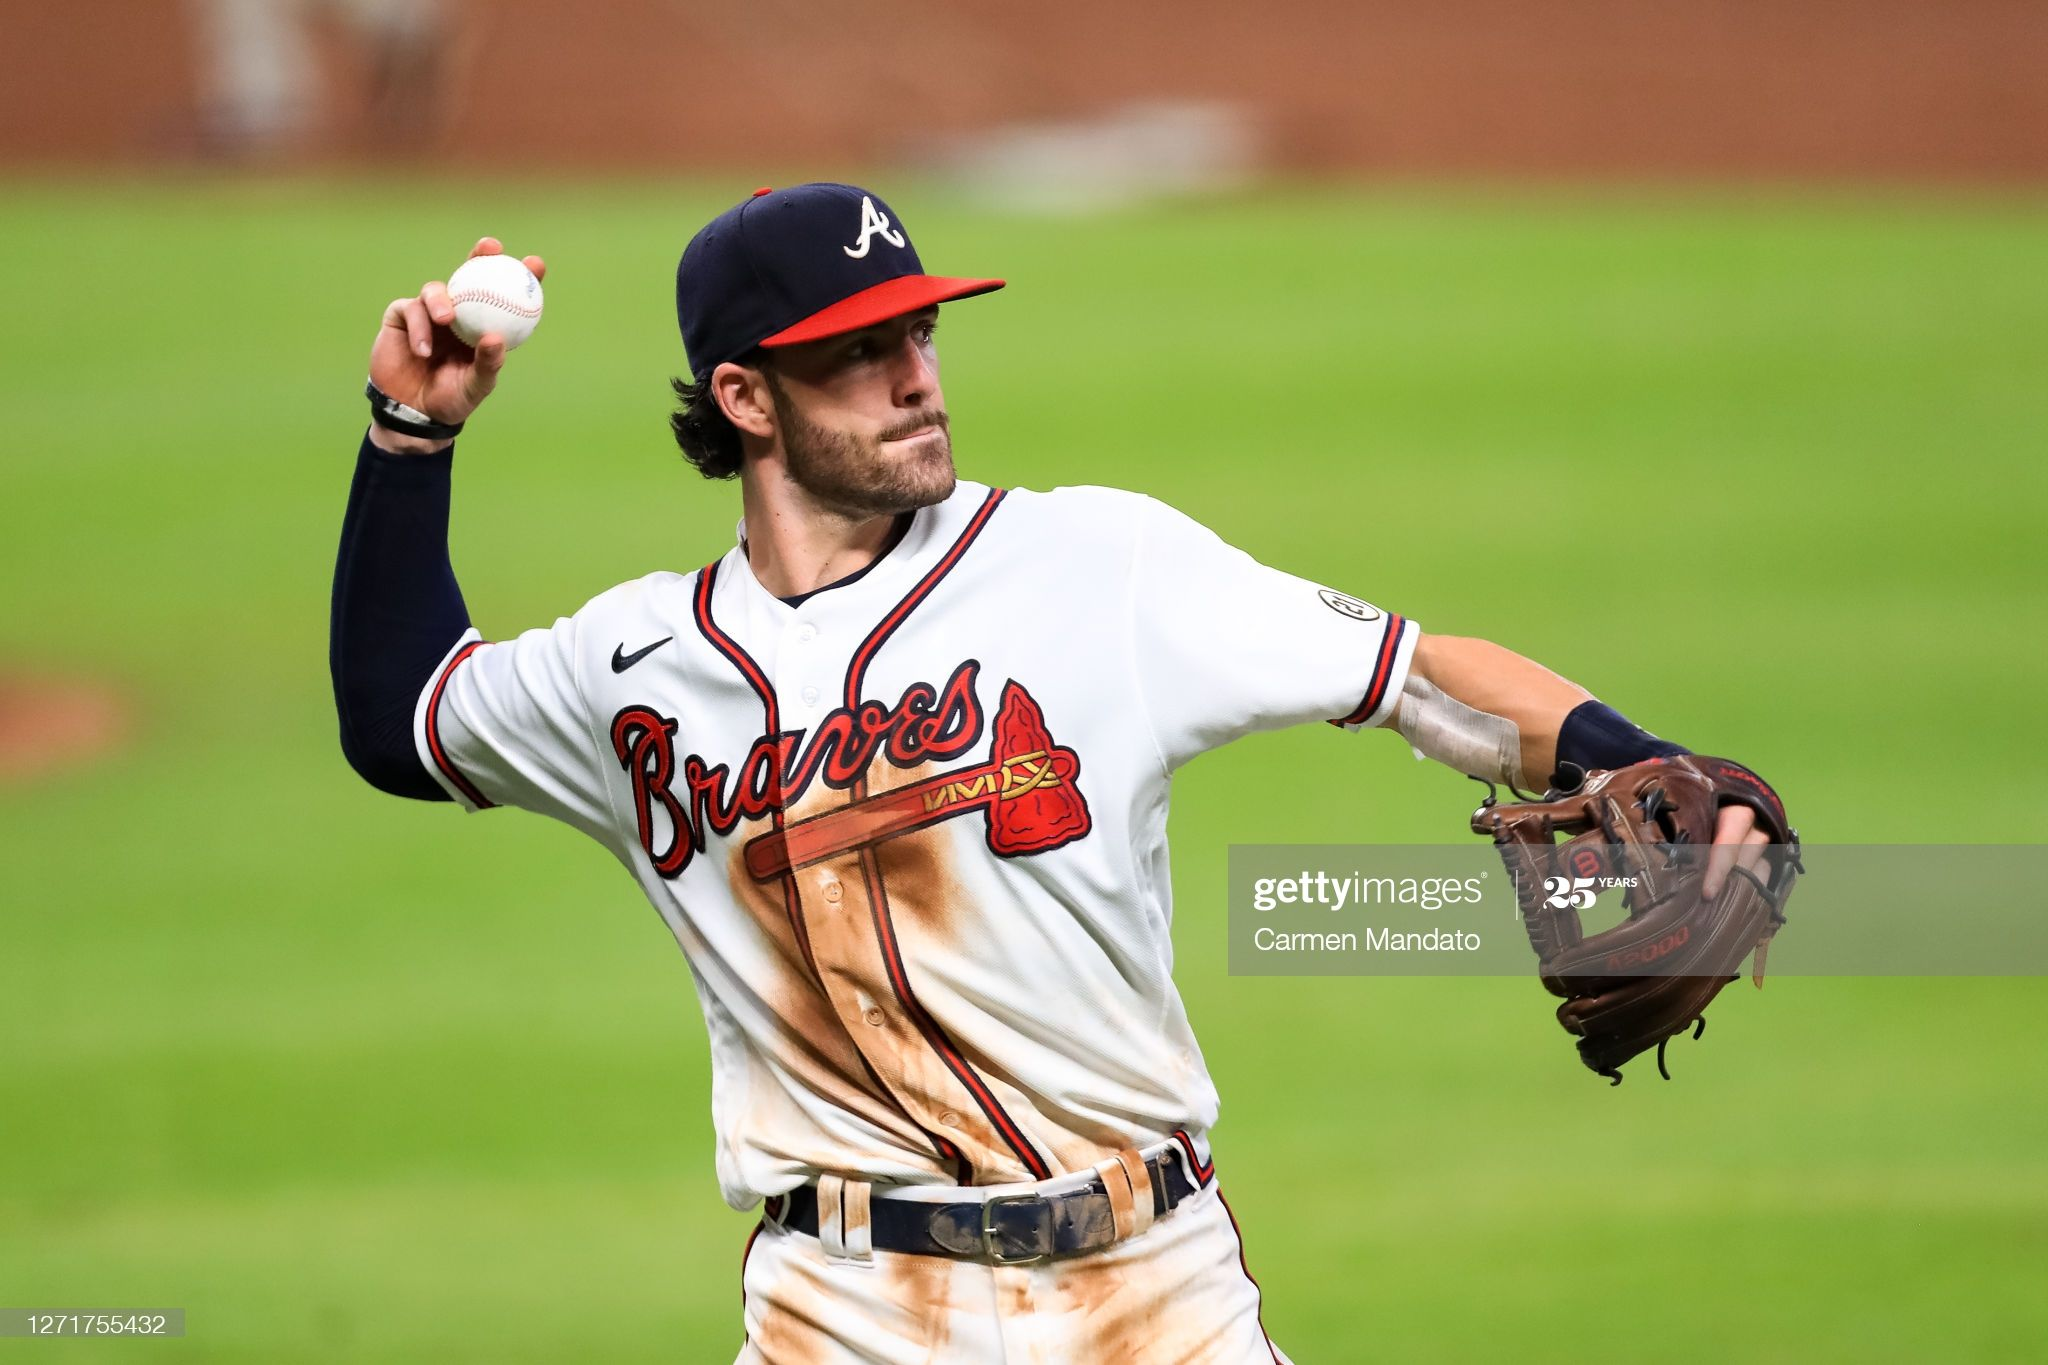 Dansby Swanson Of The Atlanta Braves In Action During A Game Against In 2020 Atlanta Braves Dansby Swanson Braves